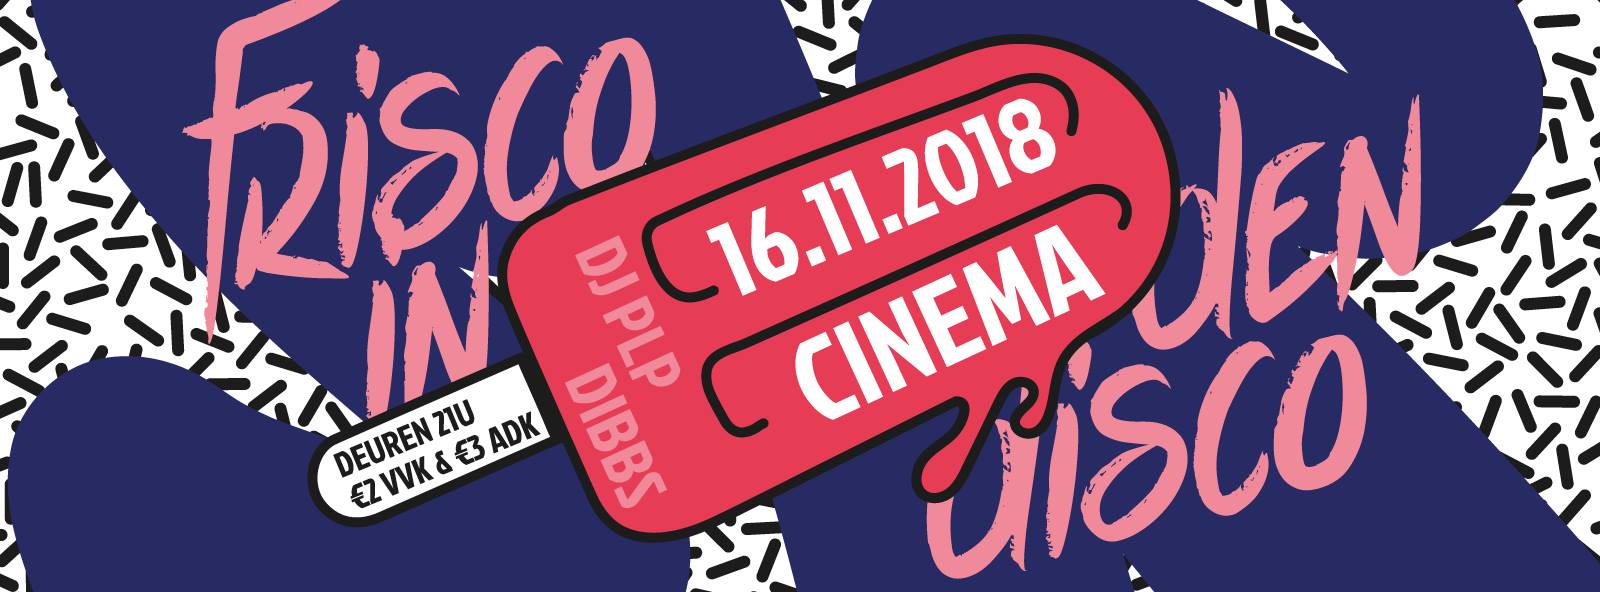 18 11 16 Frisco in den discoCinema Vrijdag 16 november 2018